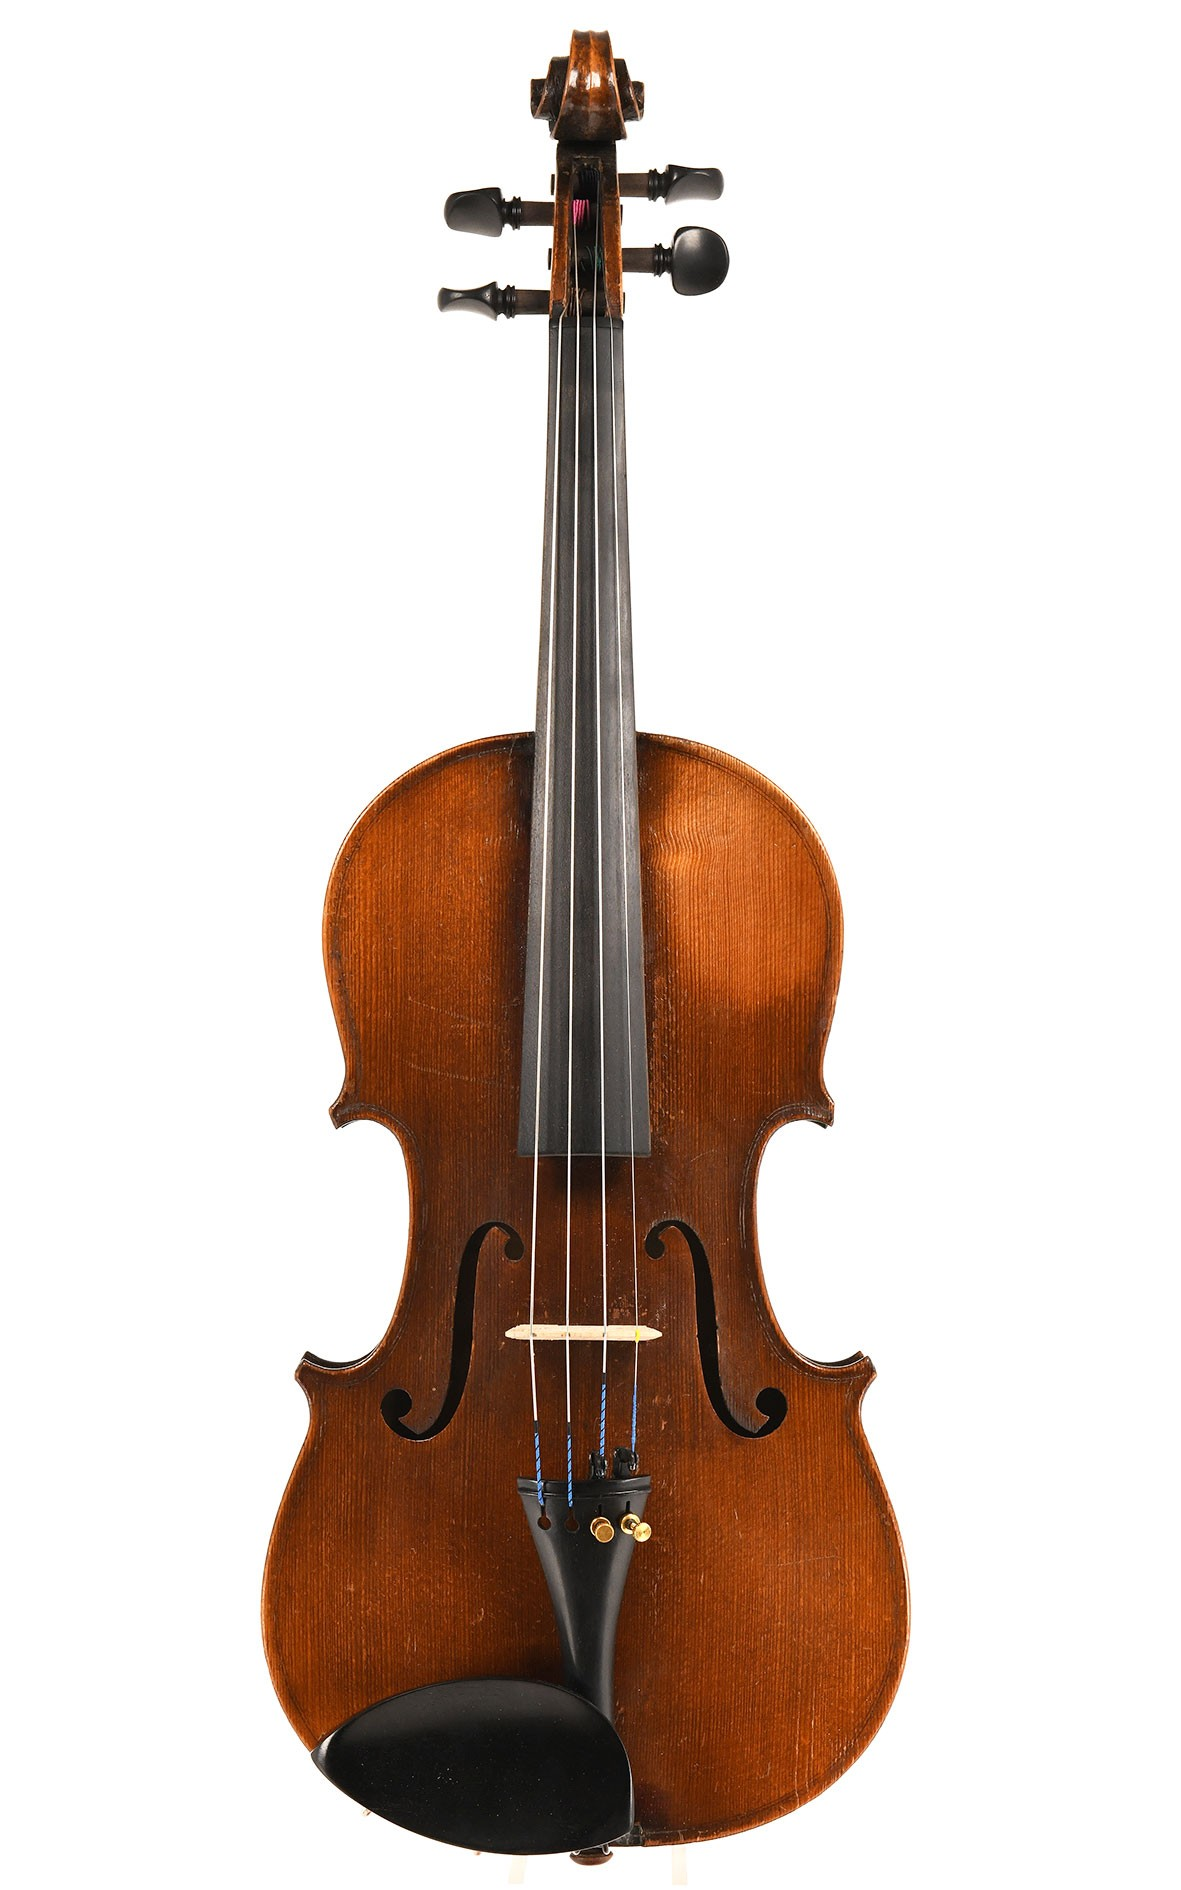 Antique French JTL violin from Mirecourt, made in approximately 1900